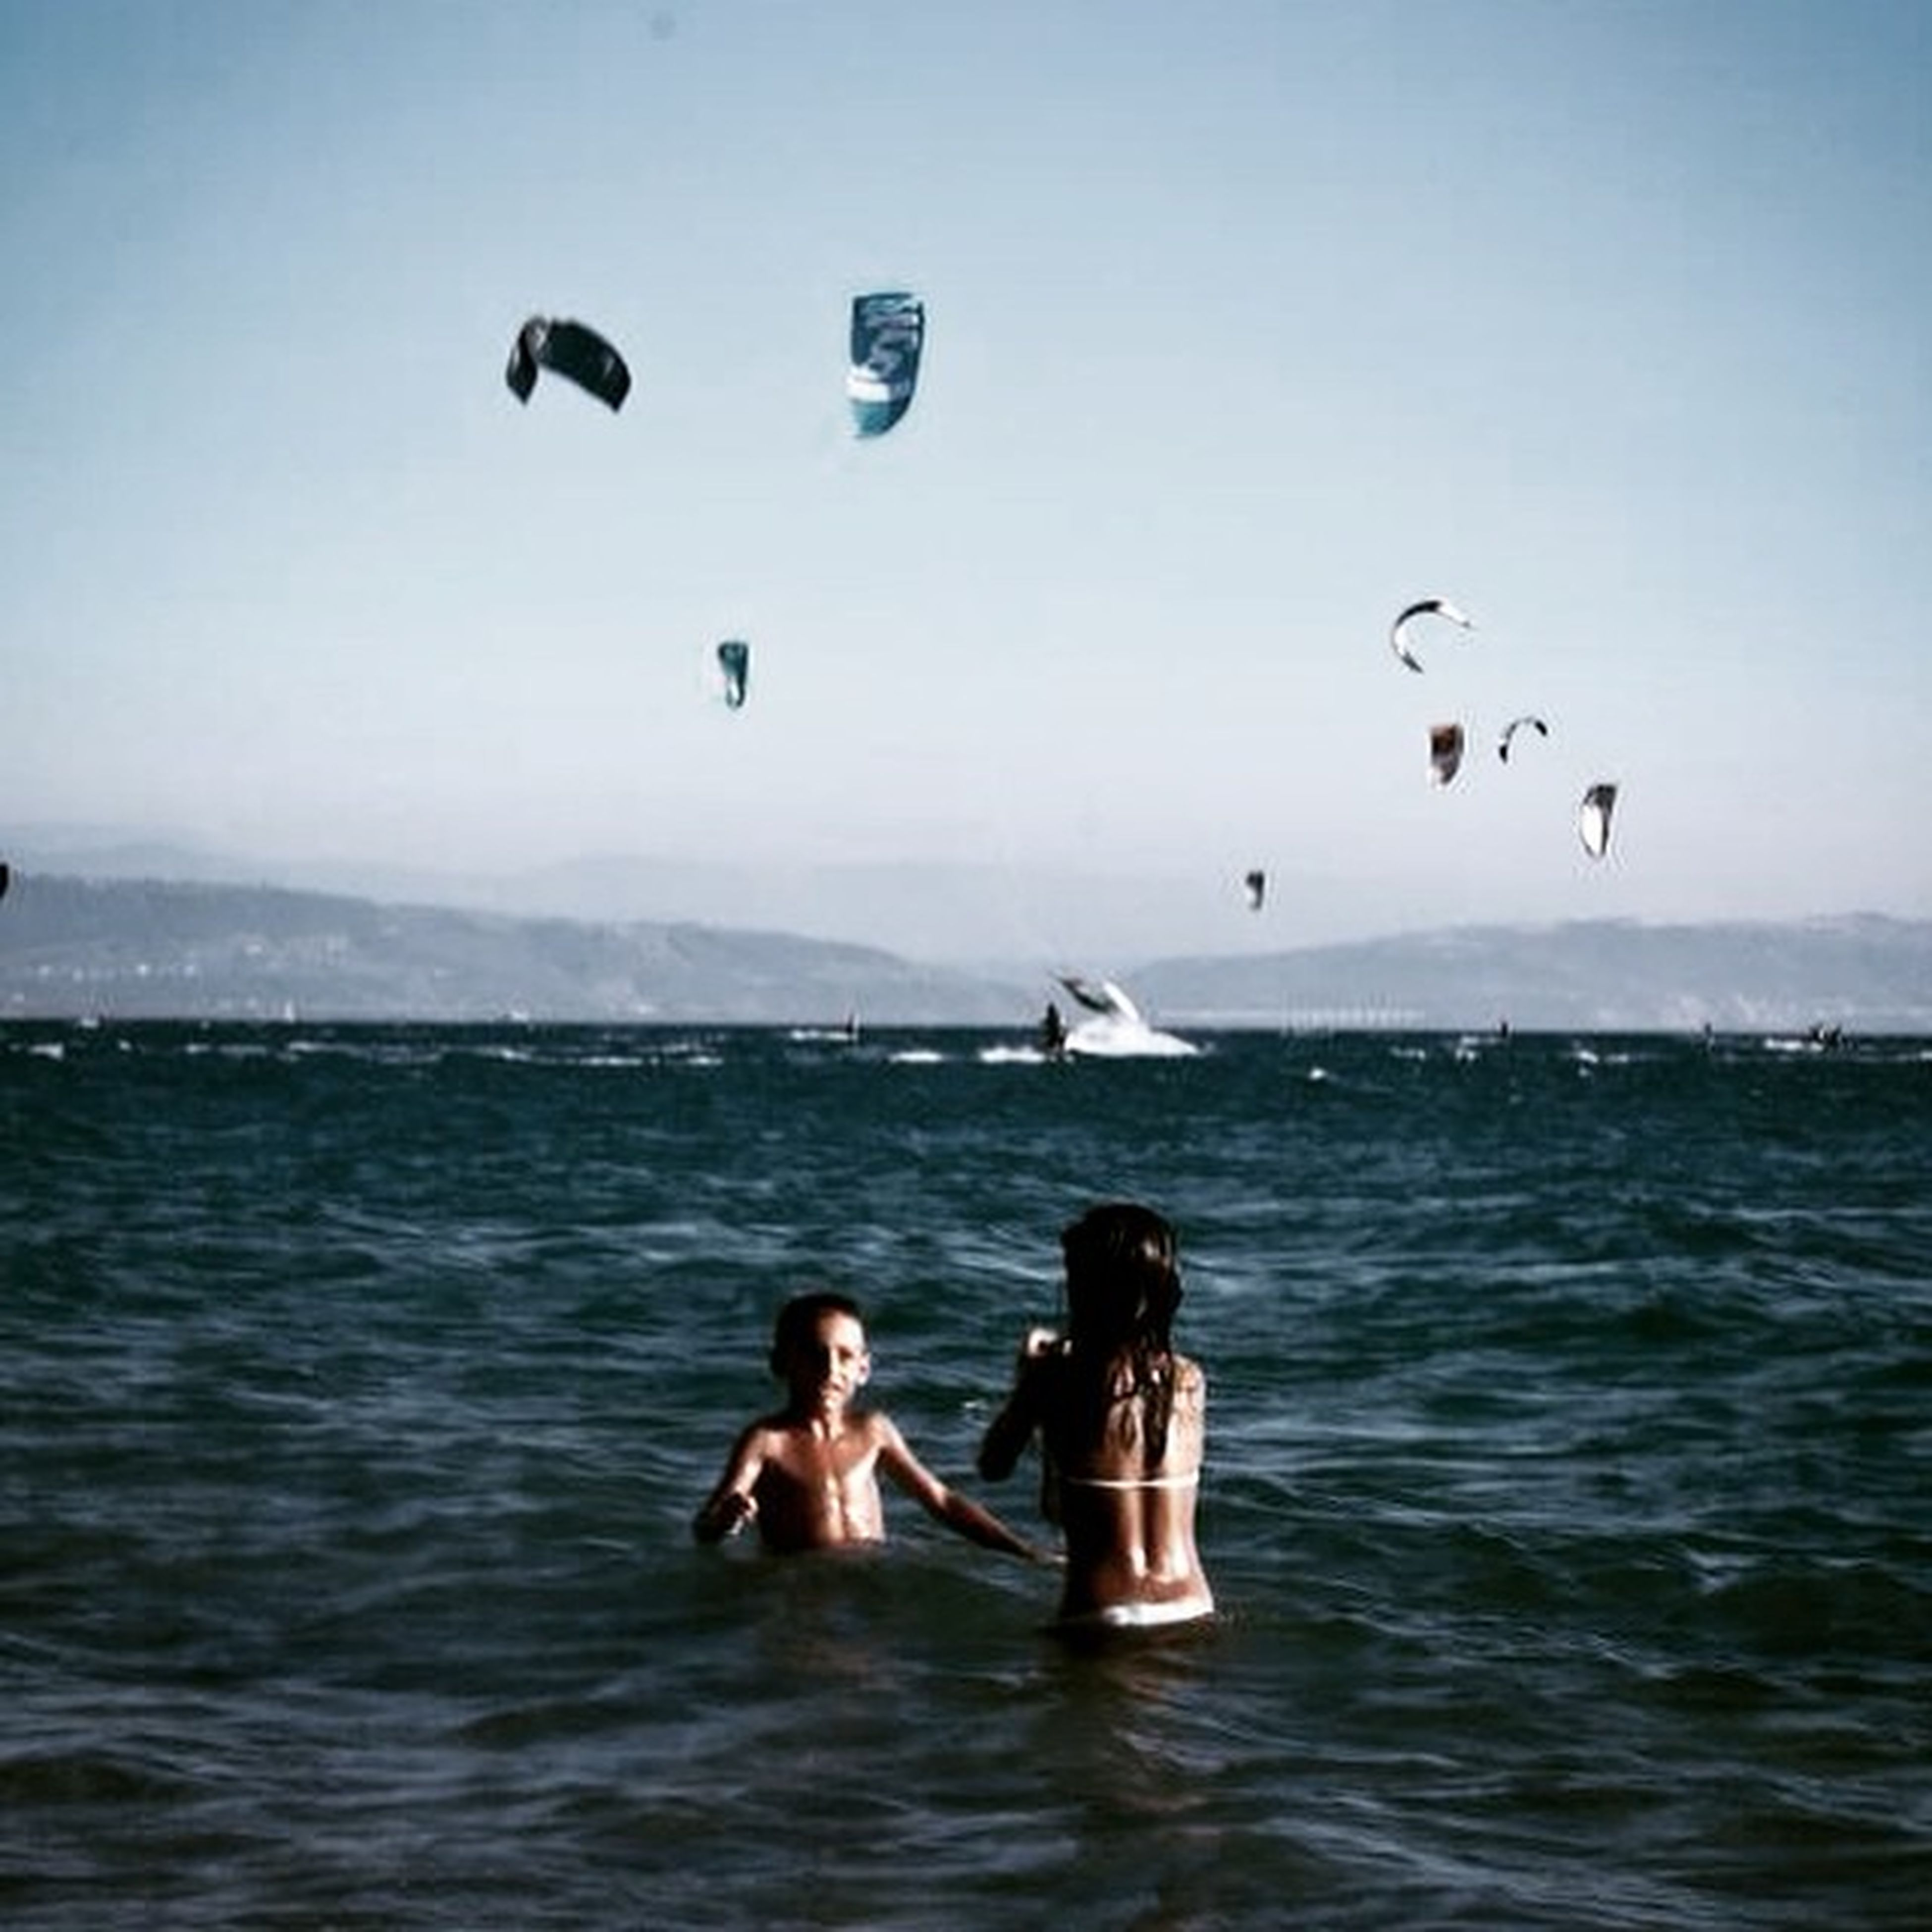 leisure activity, water, sea, lifestyles, waterfront, mid-air, vacations, adventure, enjoyment, fun, flying, men, extreme sports, sport, swimming, sky, scenics, nature